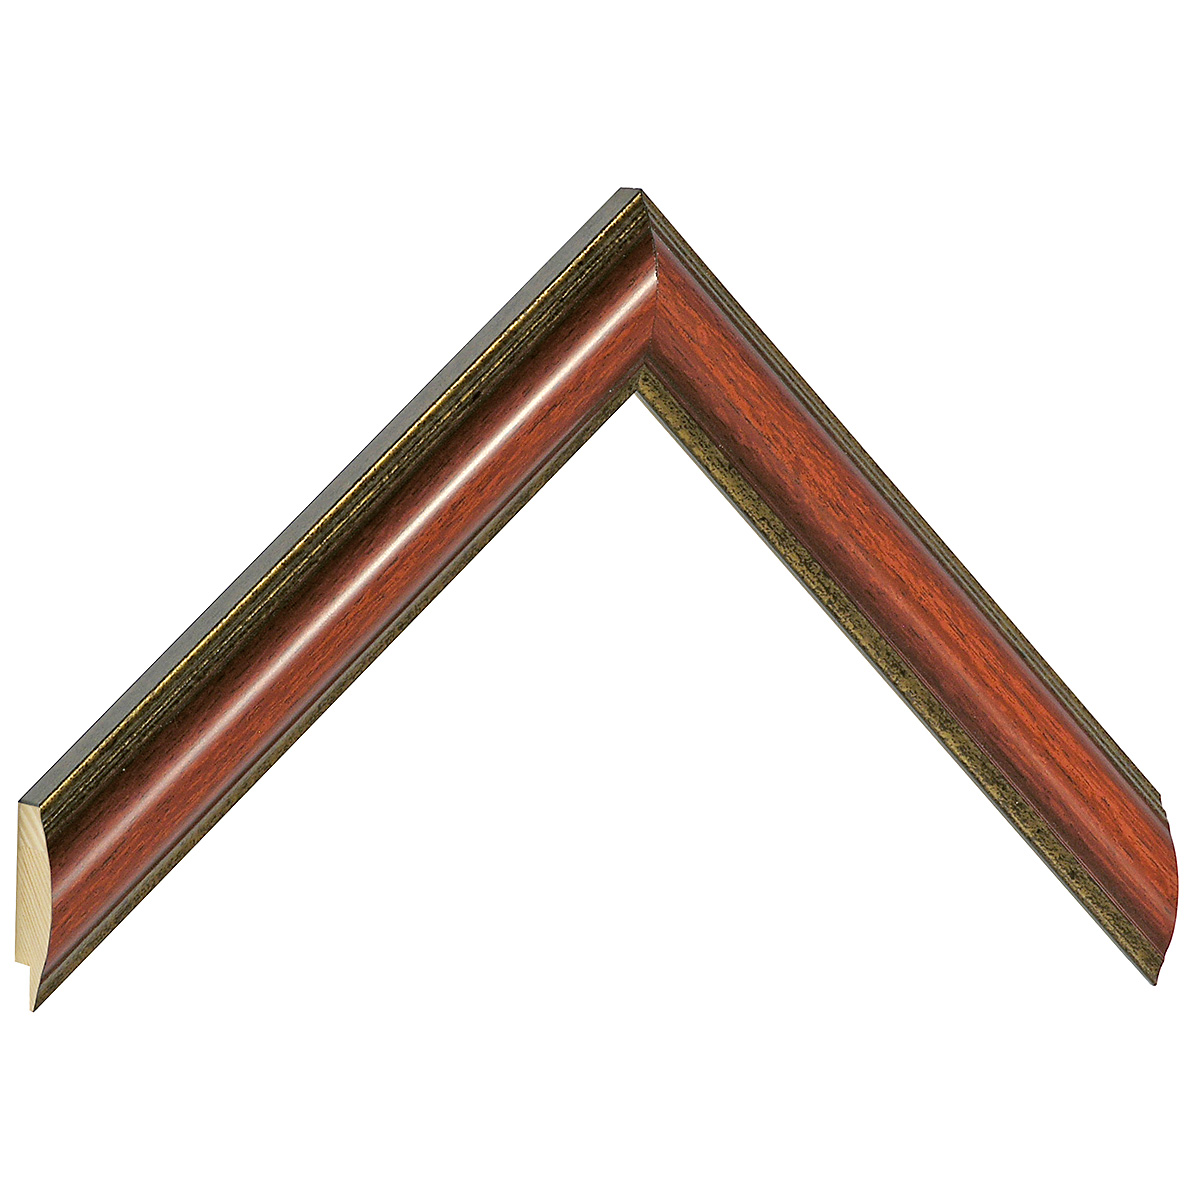 Moulding ayous - Width 25mm - mahogany, gold sight edge